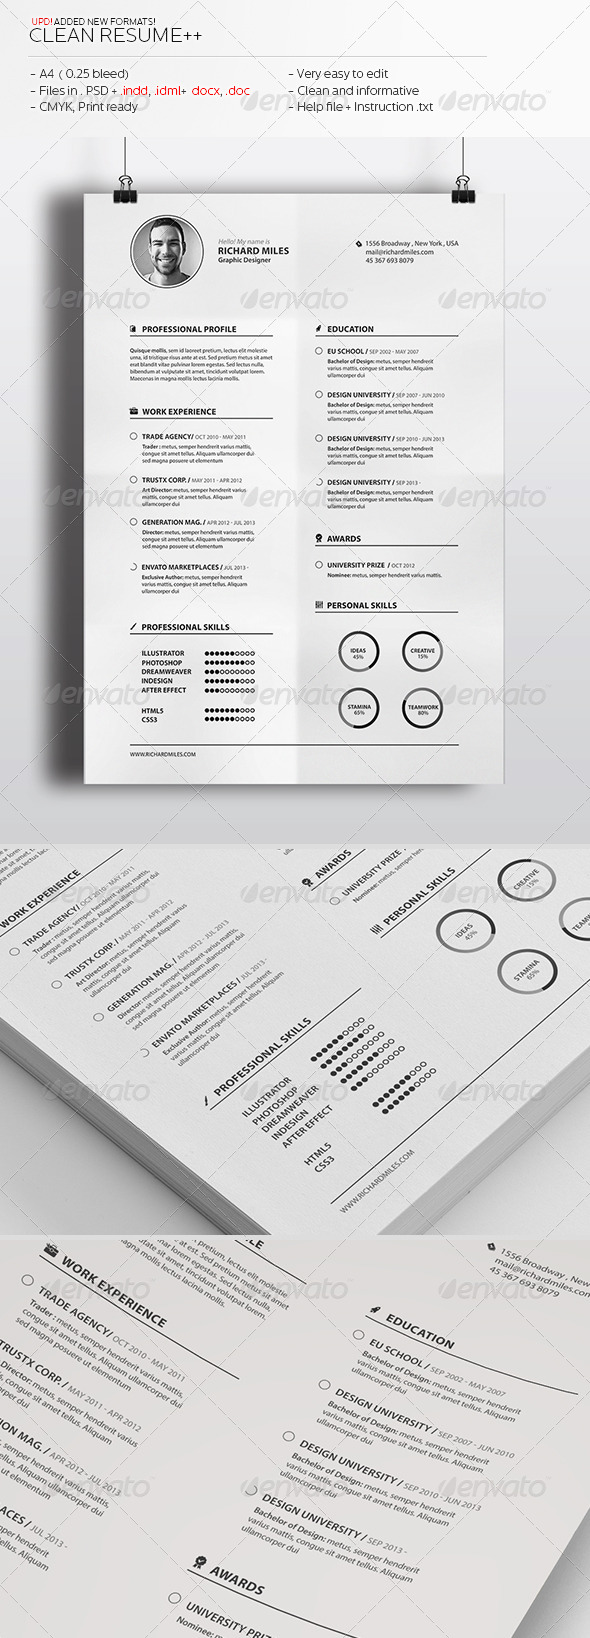 Clean Resume++ - Resumes Stationery